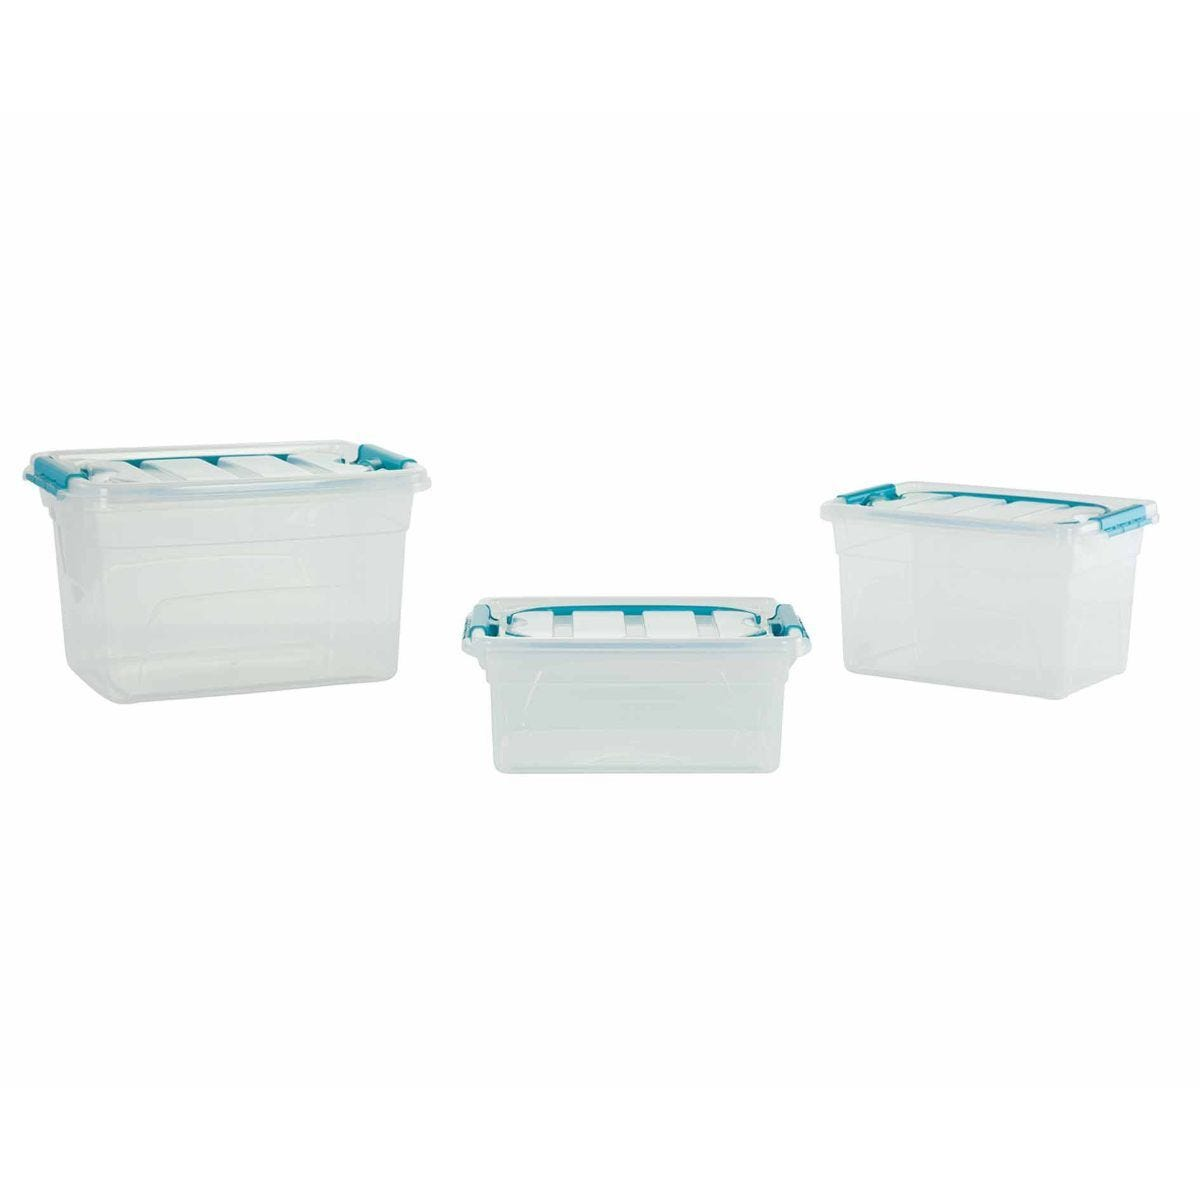 Whitefurze Carry Box with Handles Pack of 3 5L / 7L / 13L